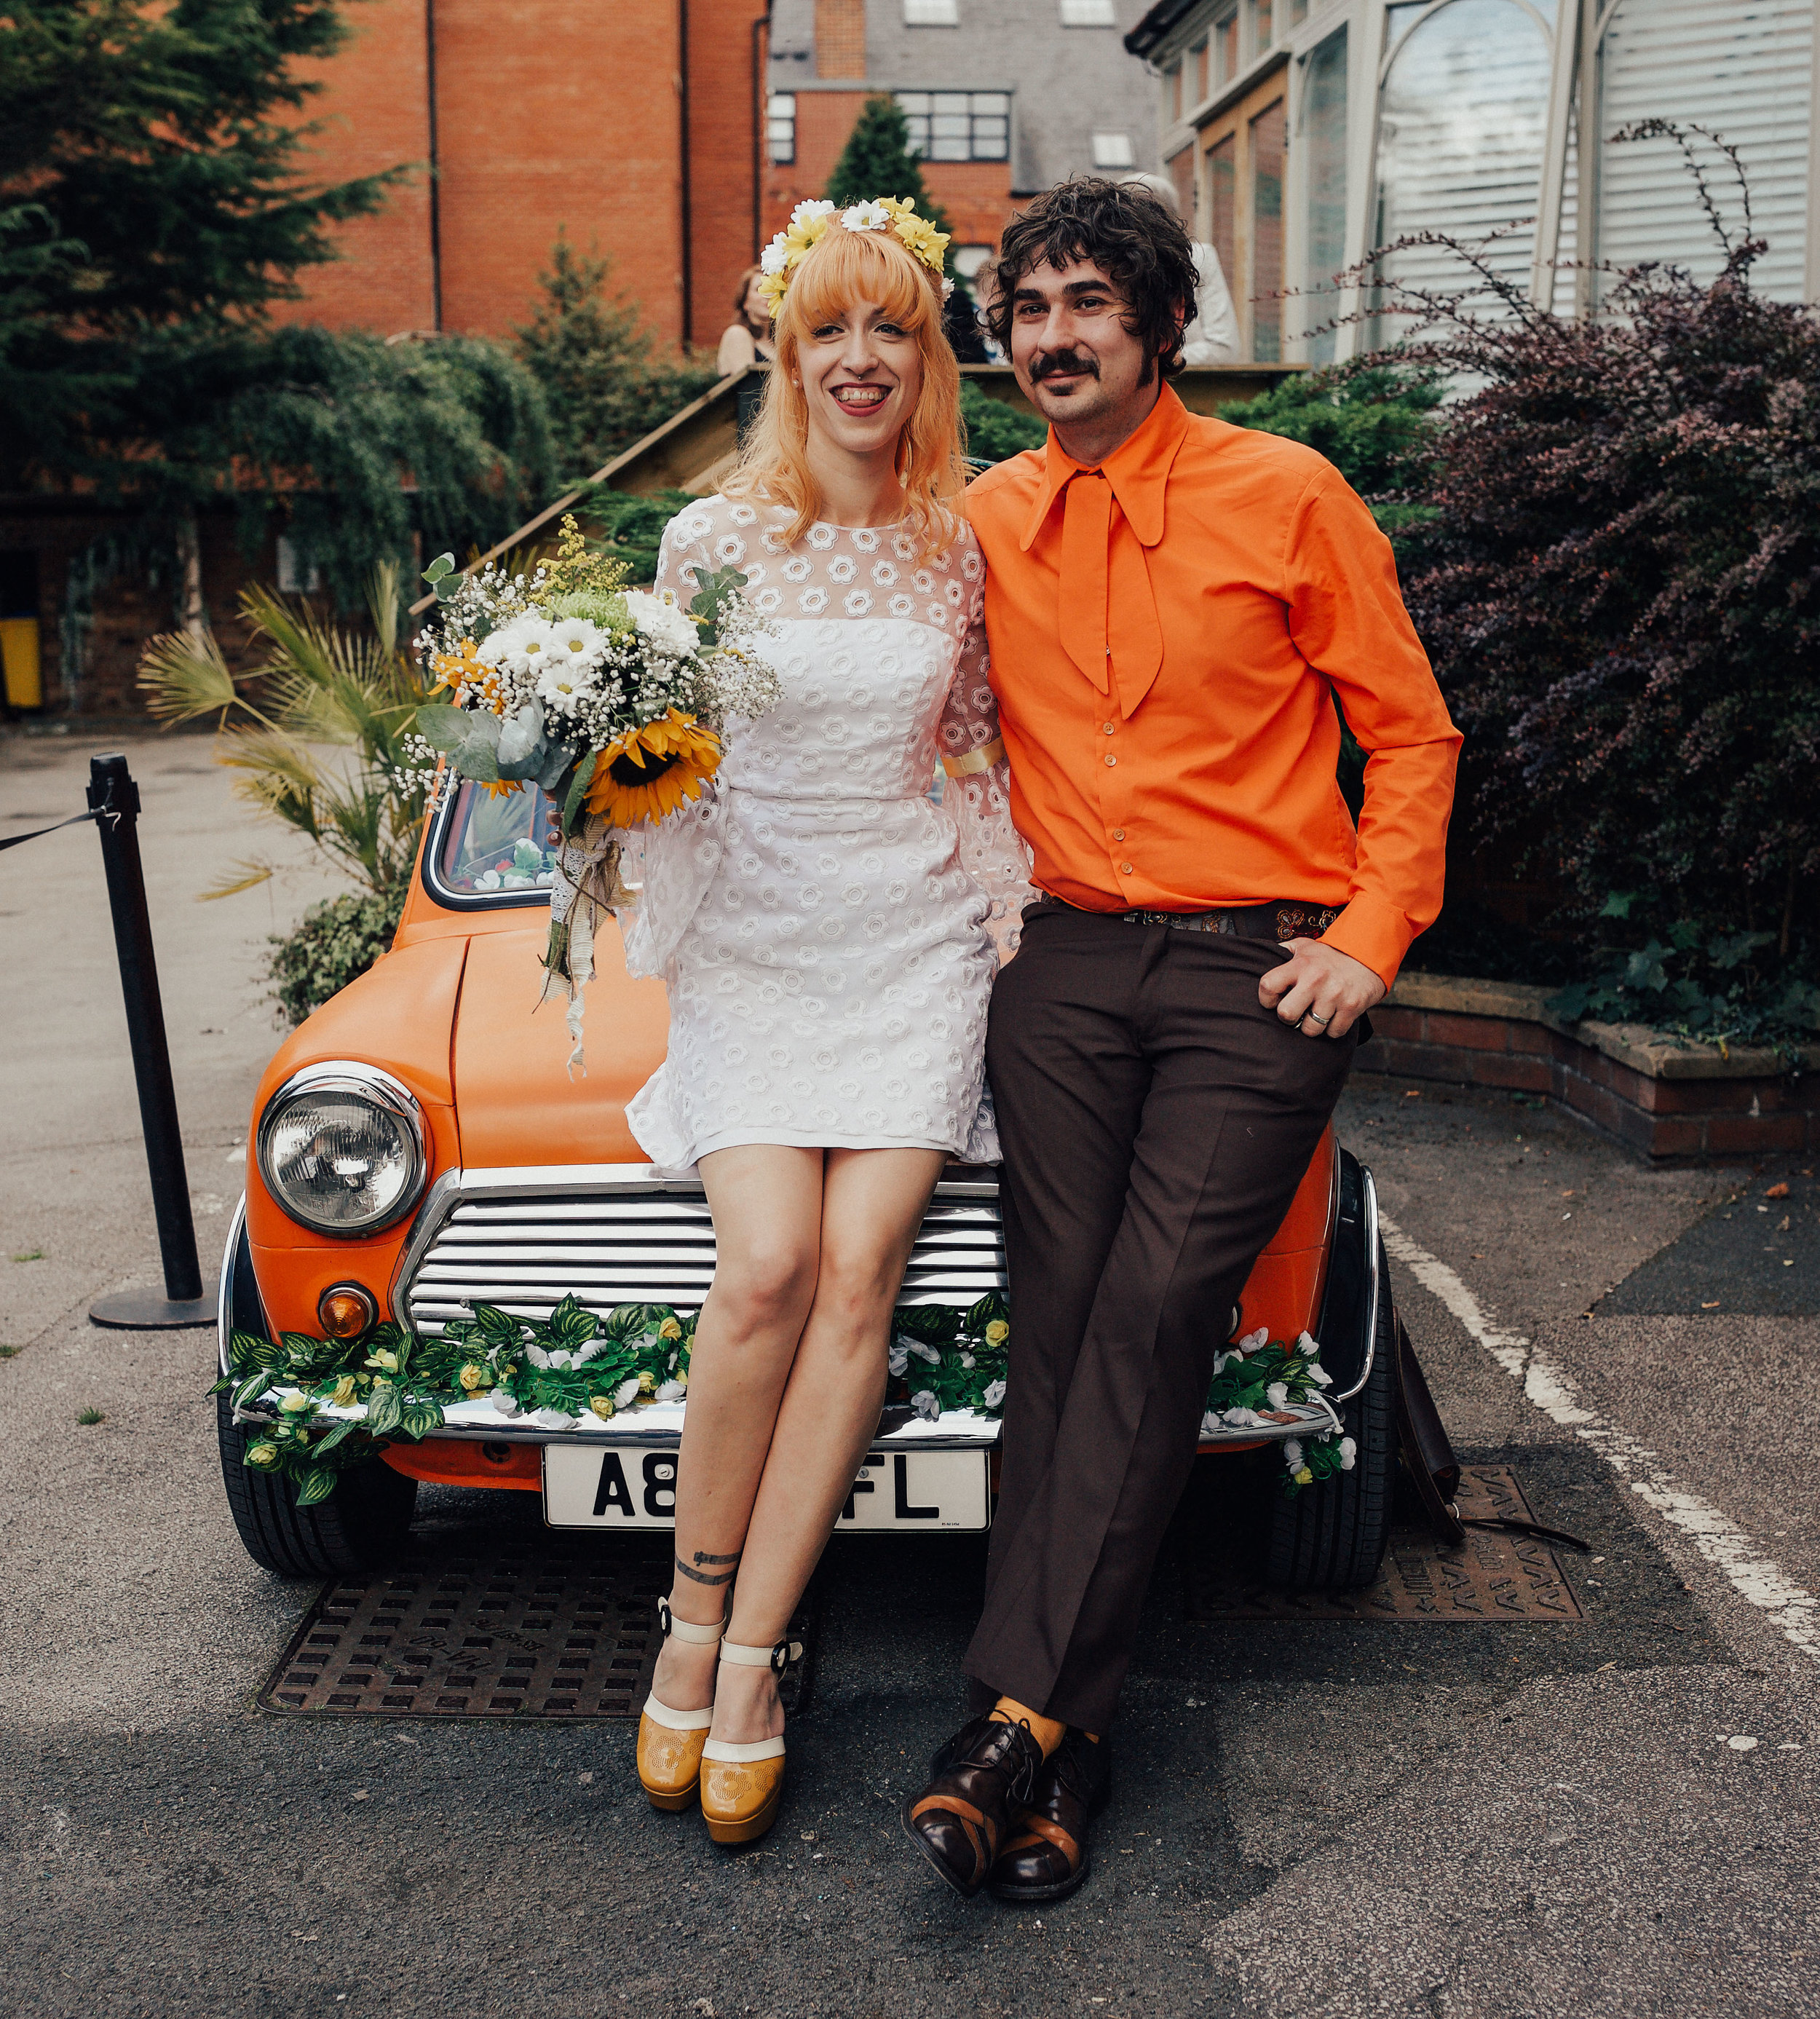 ALTERNATIVE_WEDDING_PHOTOGRAPHY_LEEDS_UK_PJ_PHILLIPS_PHOTOGRAPHY_121.jpg